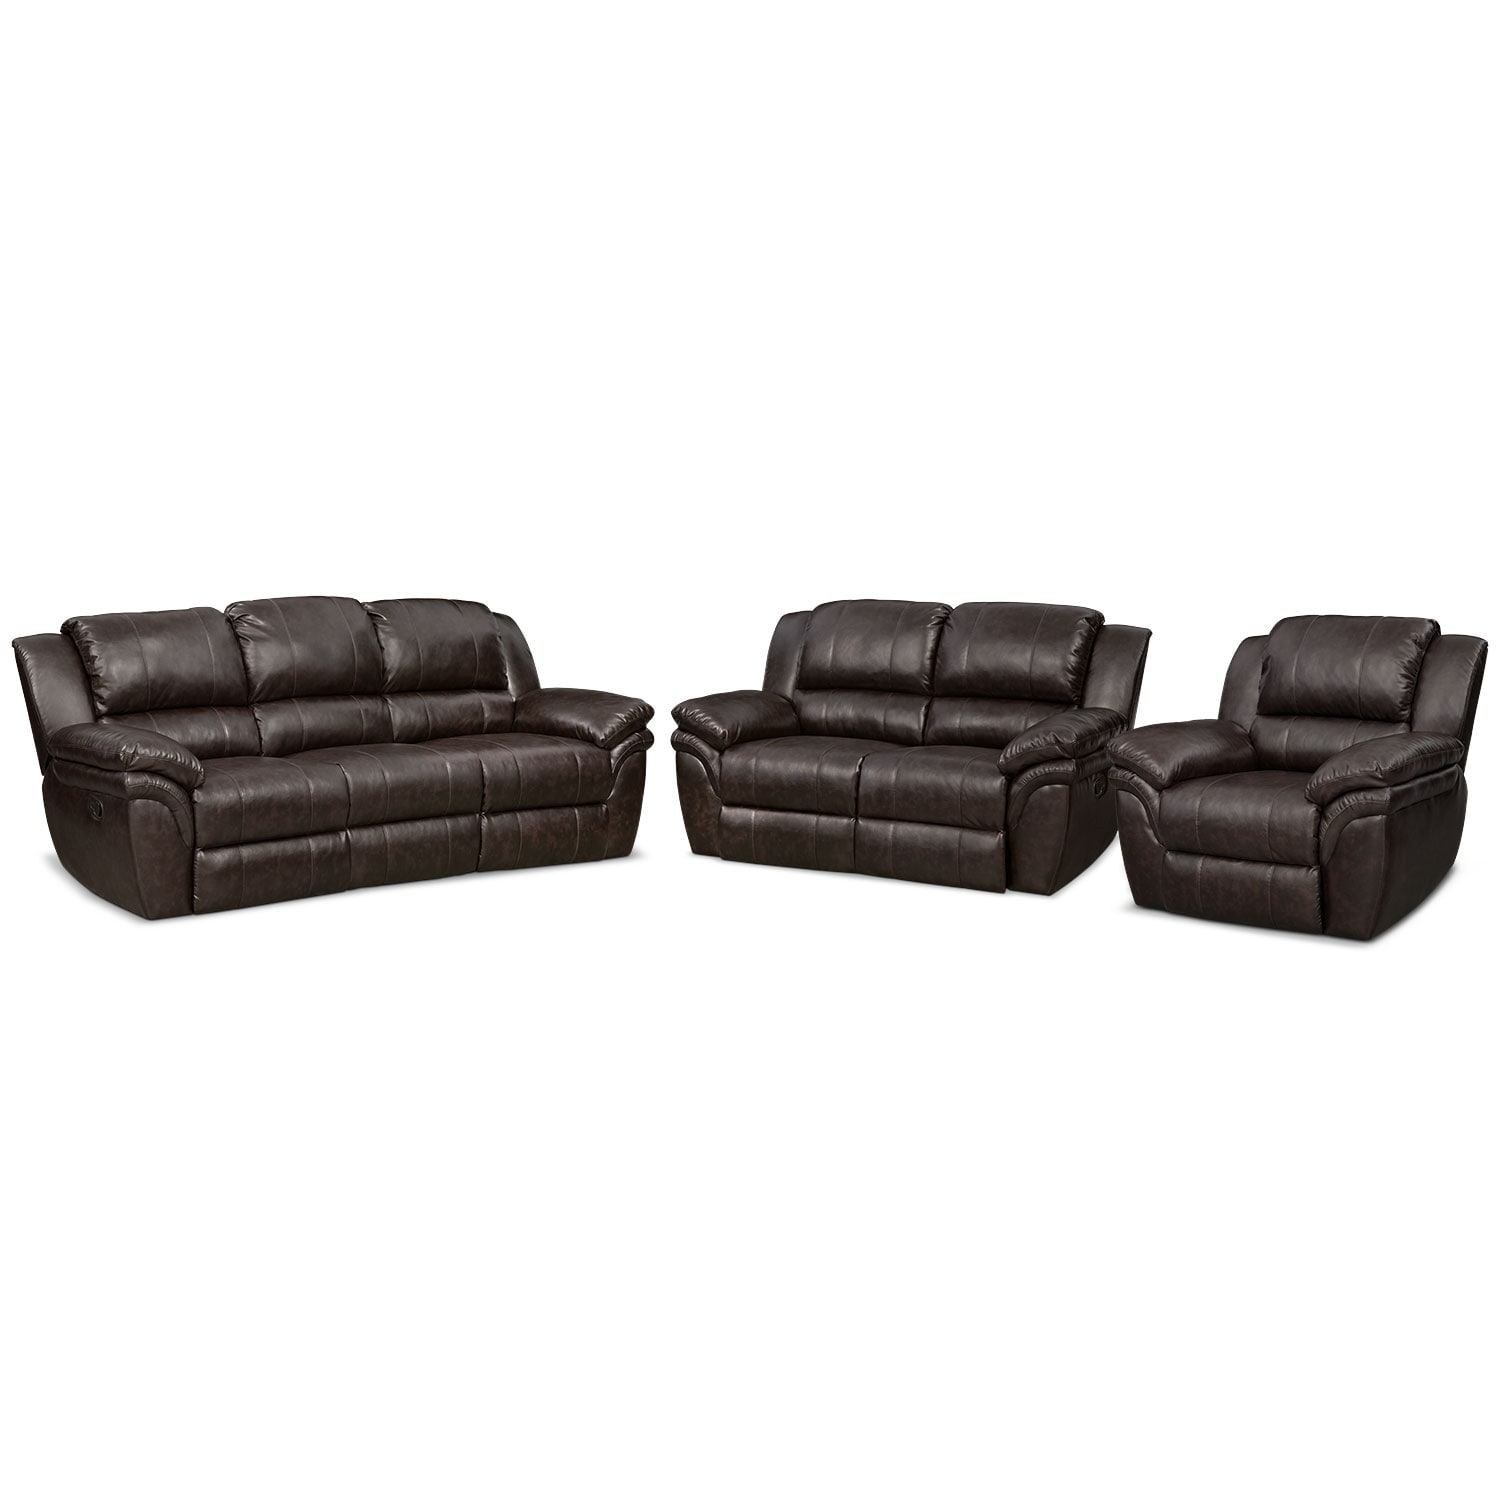 Aldo Manual Dual Reclining Sofa Loveseat And Recliner Set Brown American Signature Furniture